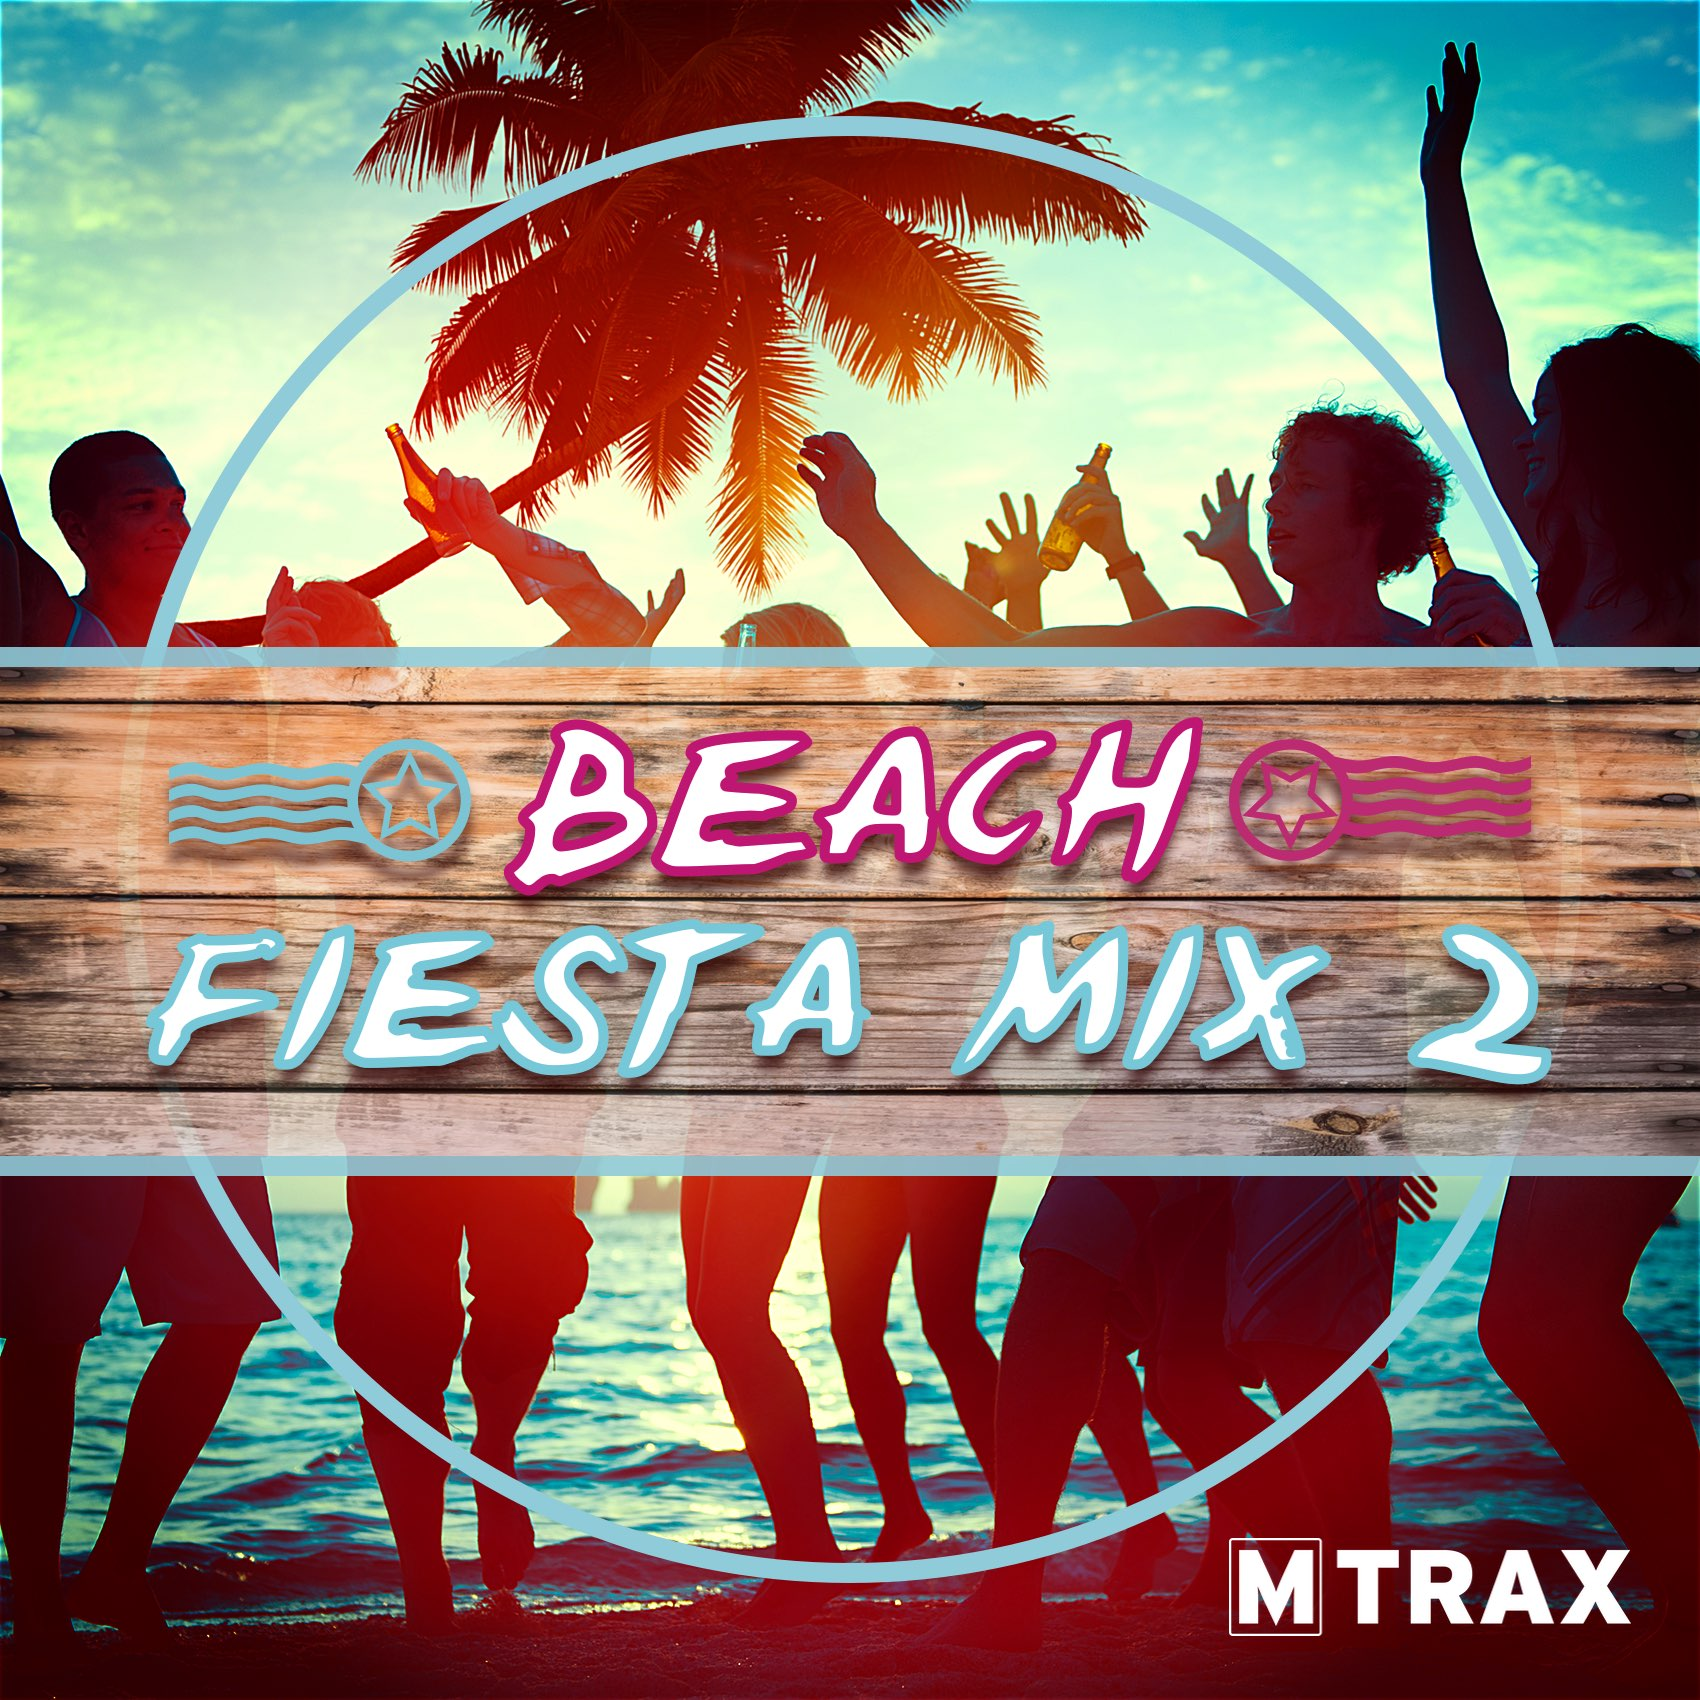 Beach Fiesta Mix 2 - MTrax Fitness Music